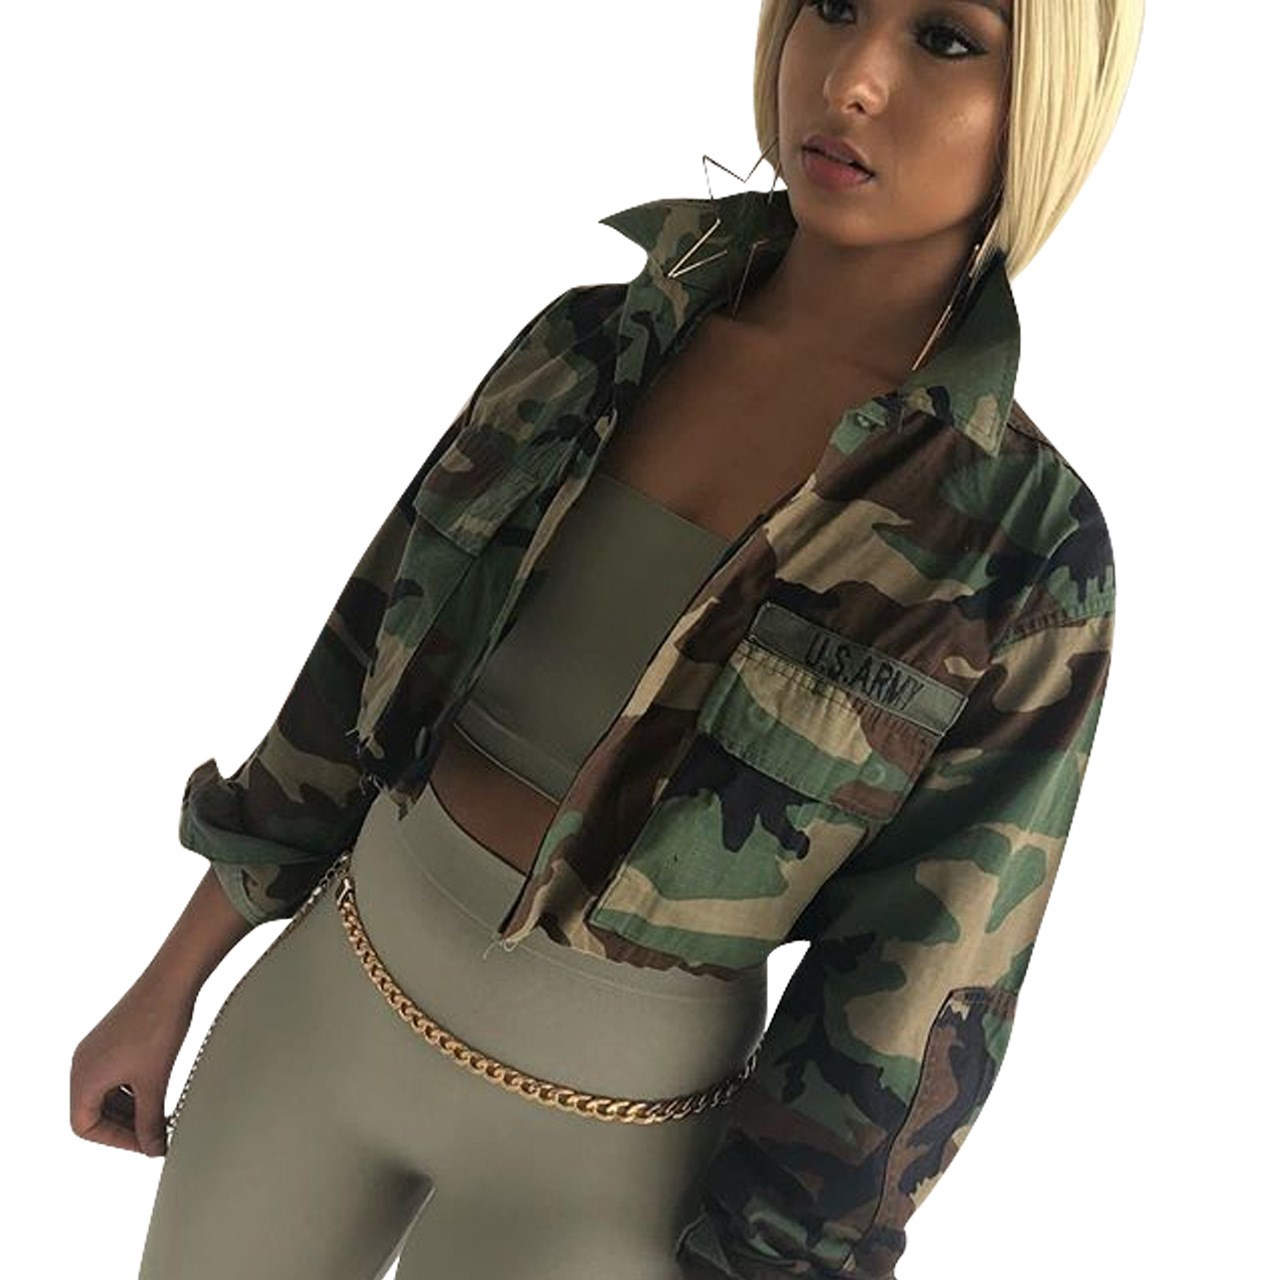 2018 Spring Female Loose Buttons Military Fatigues Stylish Short Jacket Green Camouflage Short Jacket